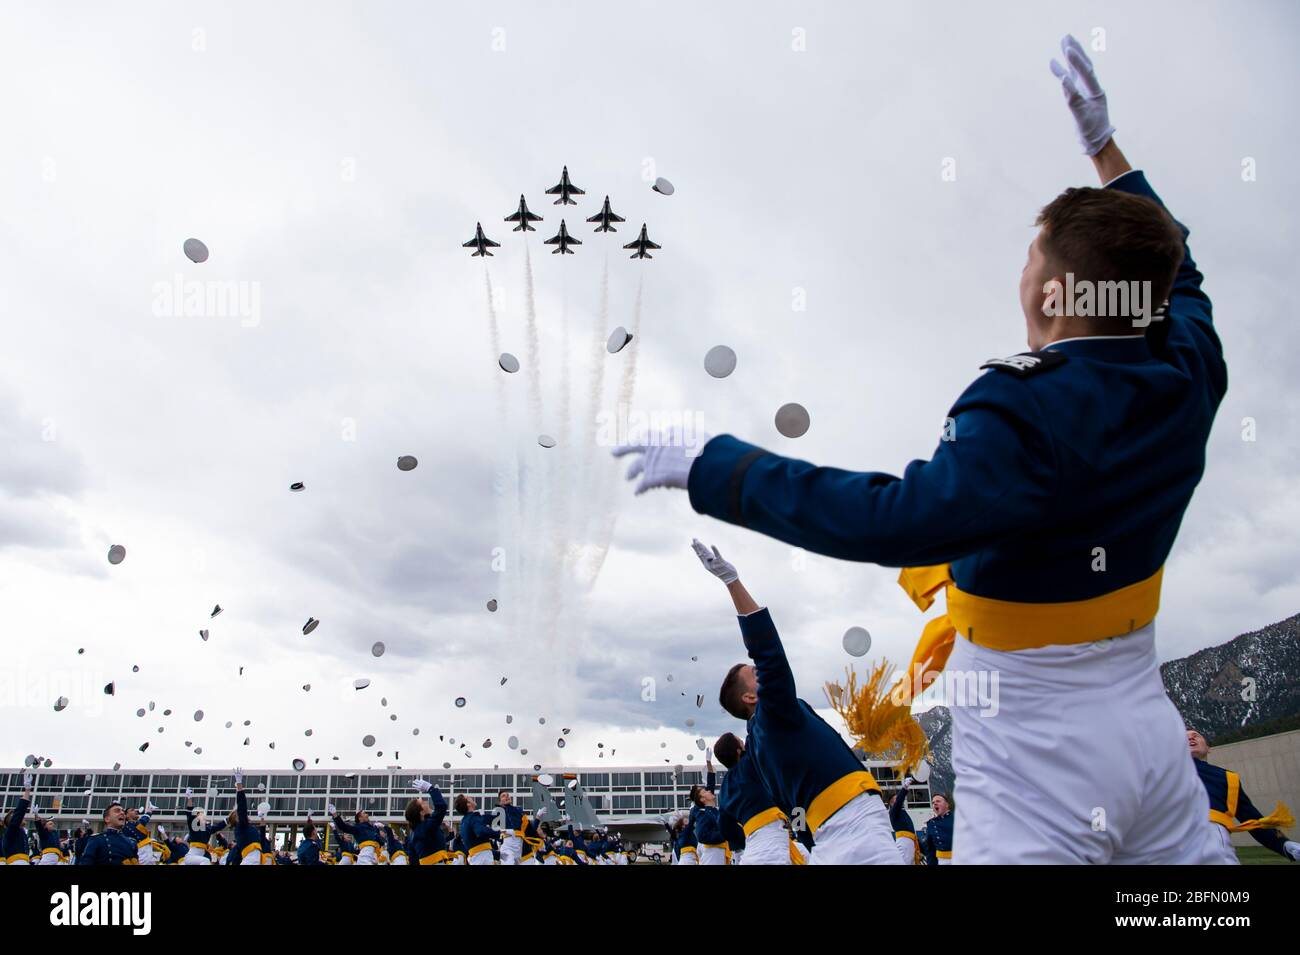 Colorado Springs, United States. 18th Apr, 2020. U.S. Air Force Cadets toss their caps into the air Air Force as the Thunderbirds roar overhead to celebrate graduation for the class of 2020 at the Air Force Academy April 18, 2020 in Colorado Springs, Colorado. Cadets were required to remain 8-feet due to the COVID-19, coronavirus pandemic. Credit: Joshua Armstrong/US Air Force/Alamy Live News Stock Photo